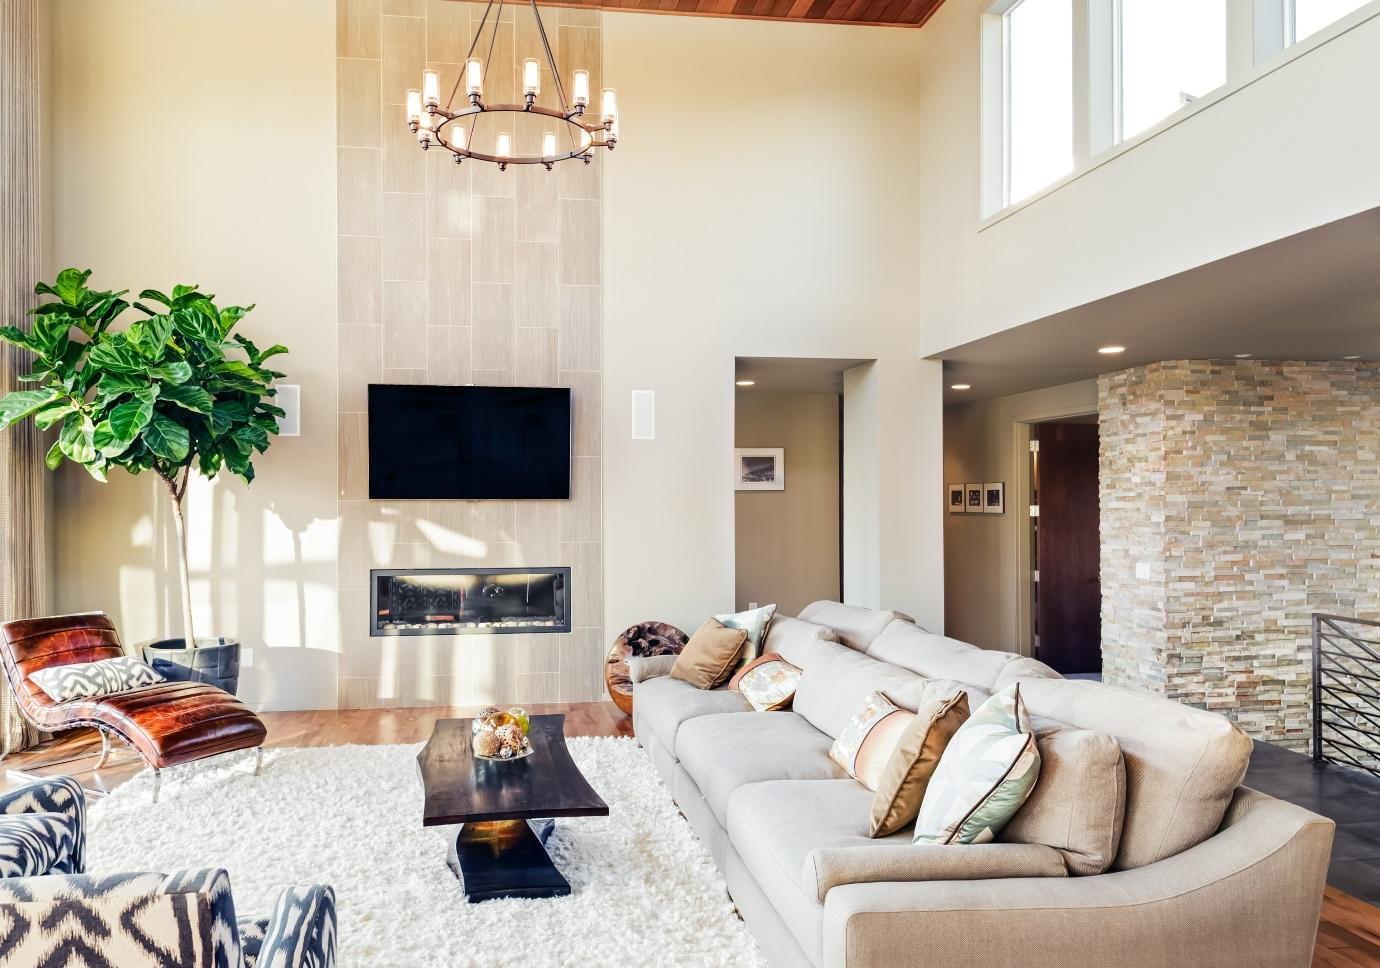 Selling your Home? Get a Great Price through Home Staging!